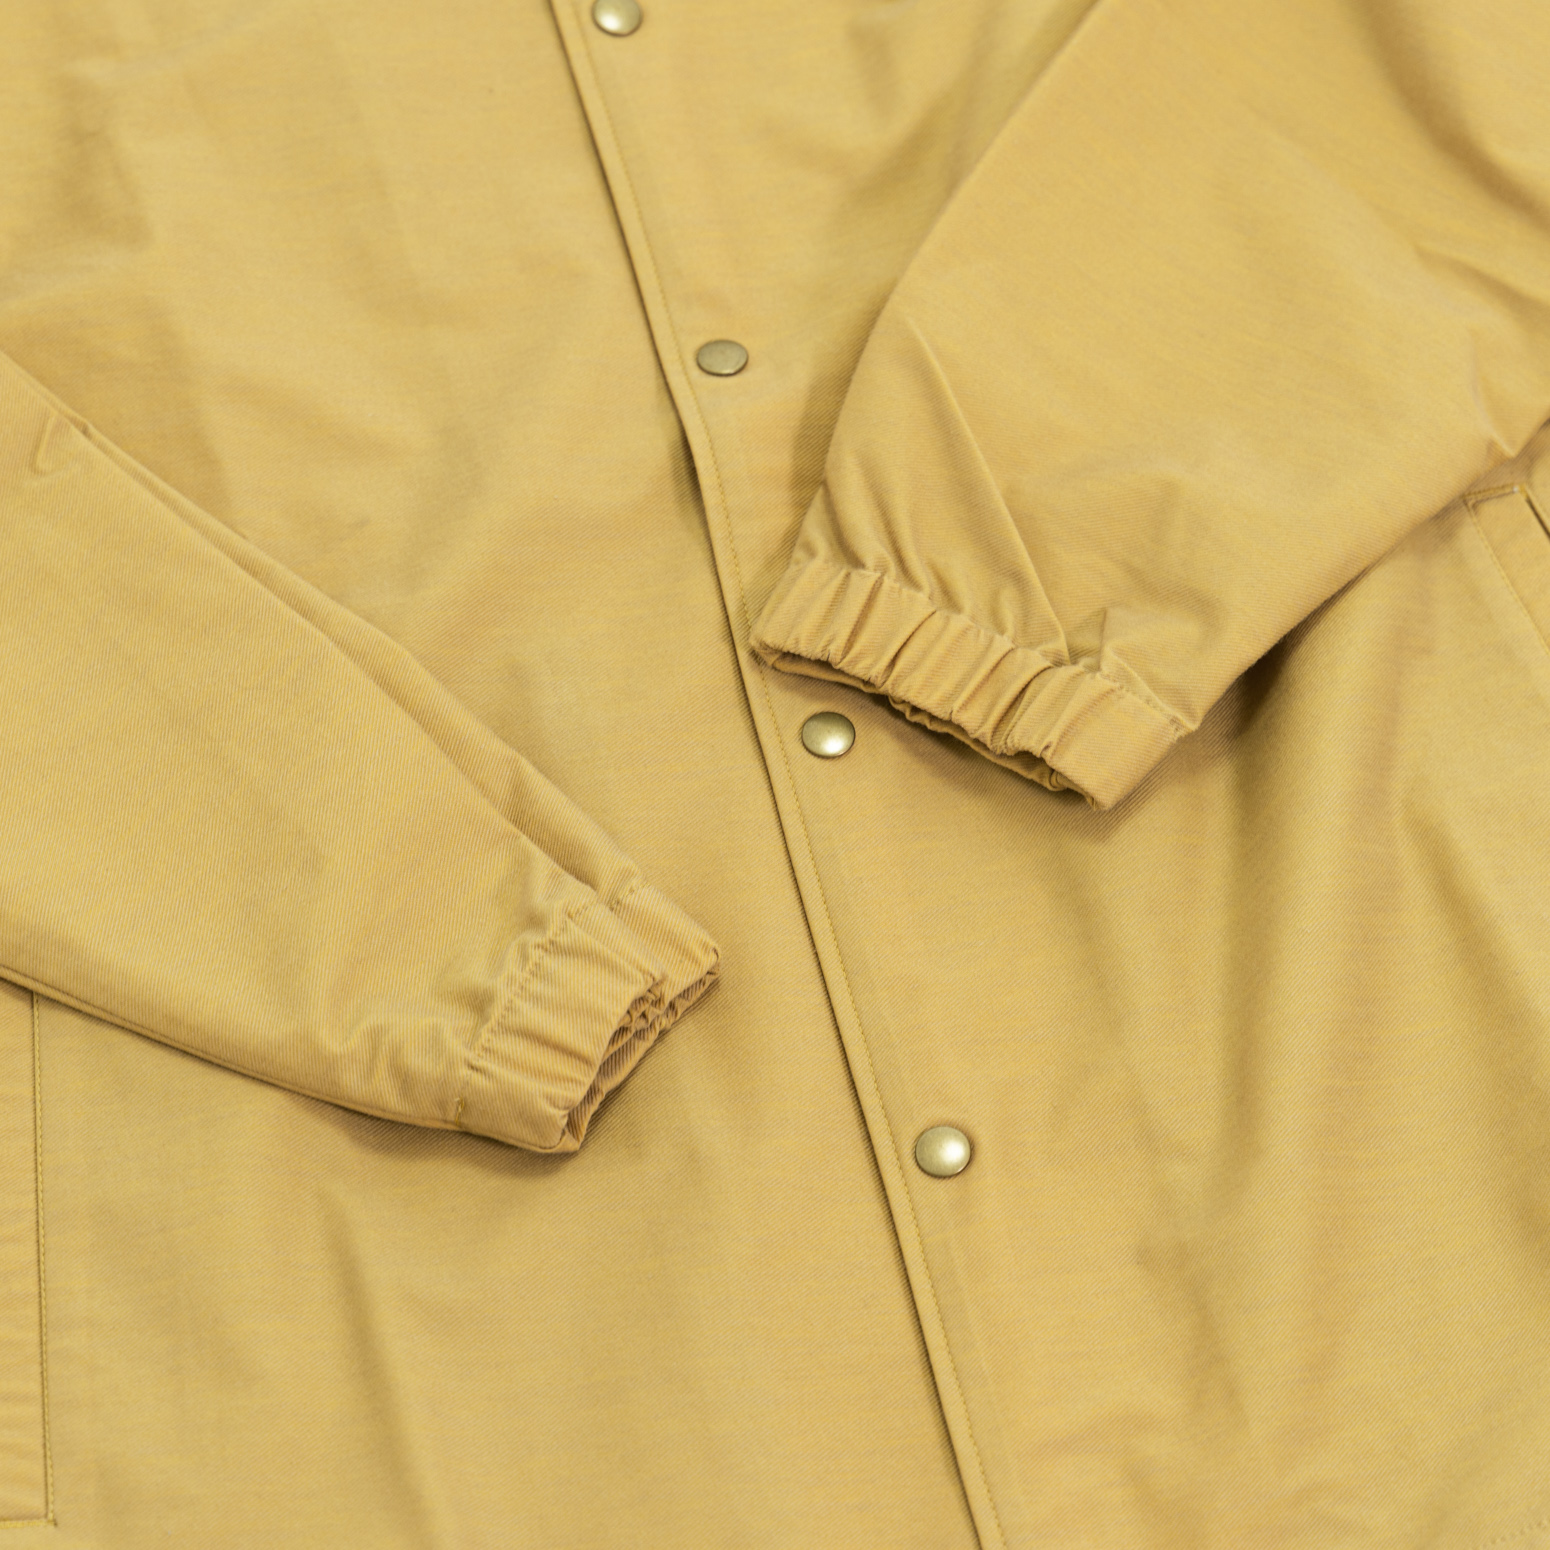 【sold out】Super High Gauge Solaro Twill Coach Jacket